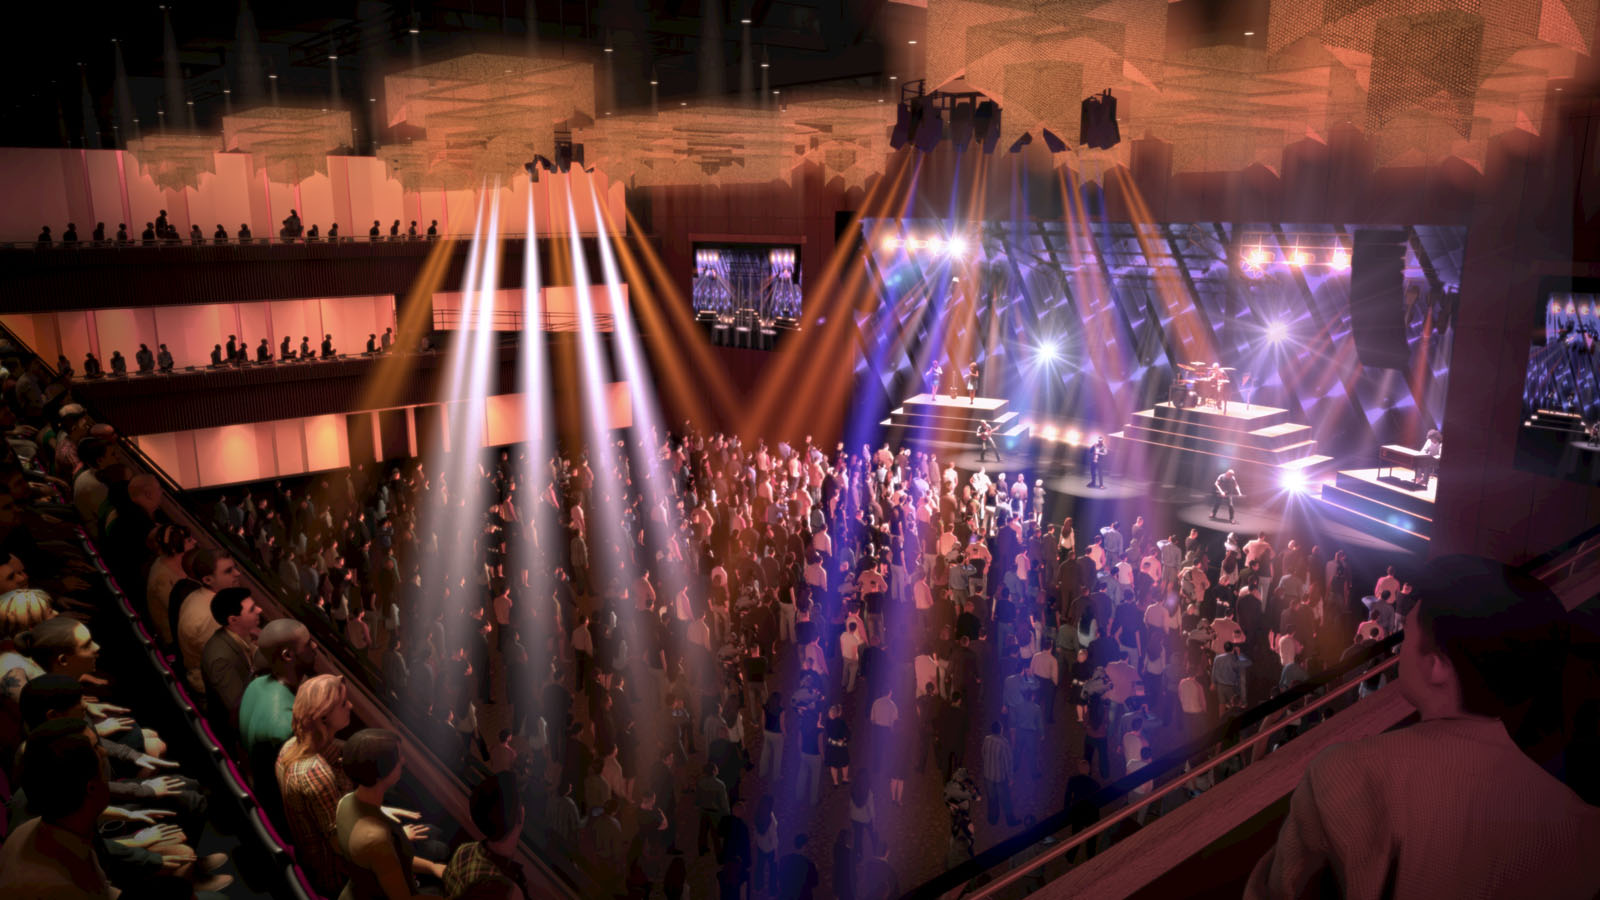 This artists rendering shows the 3,000-seat theater venue inside the casino and resort. The venue can be reconfigured for fights, concerts or other special events. (Courtesy MGM National Harbor)